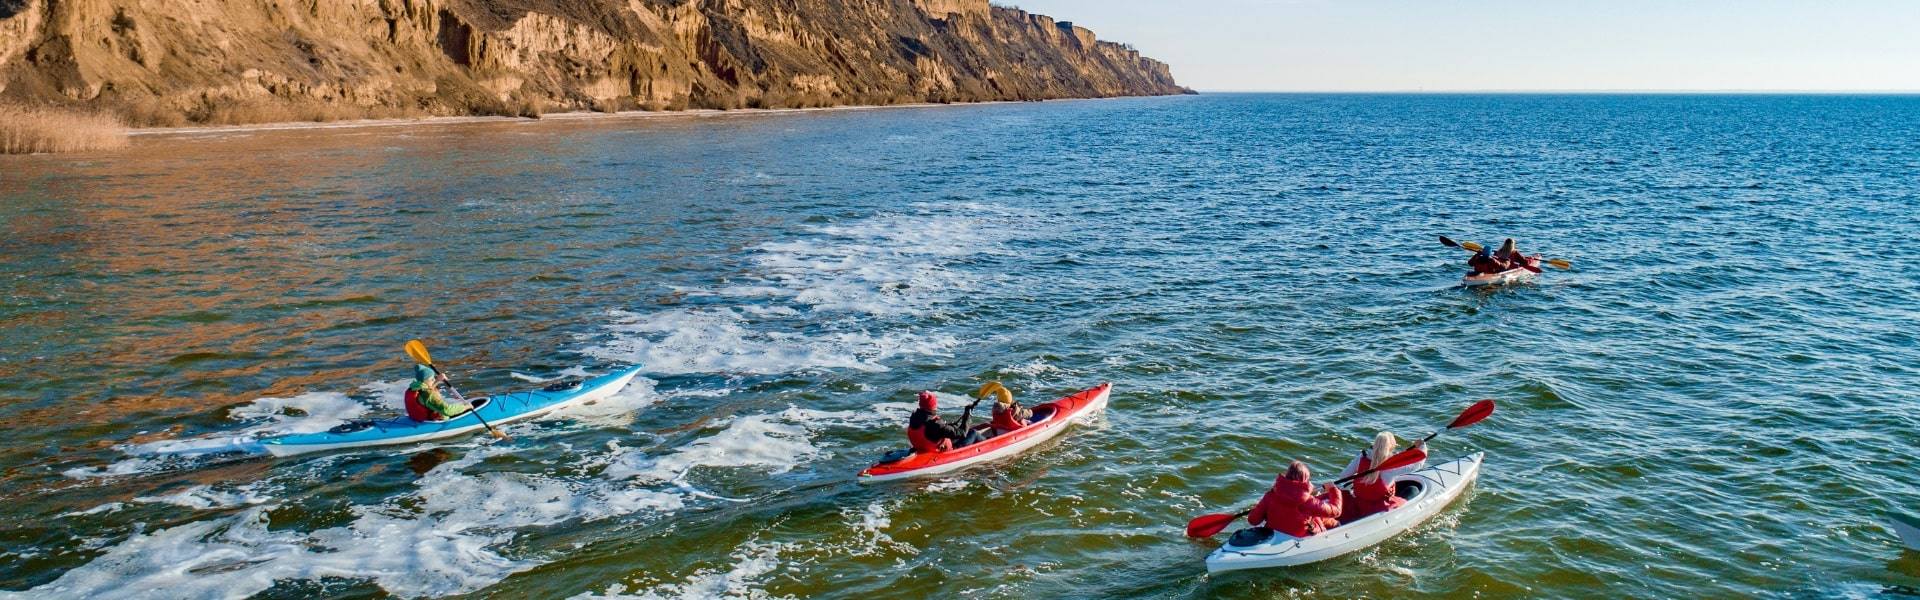 Winter Kayaking in the Kherson Grand Canyon